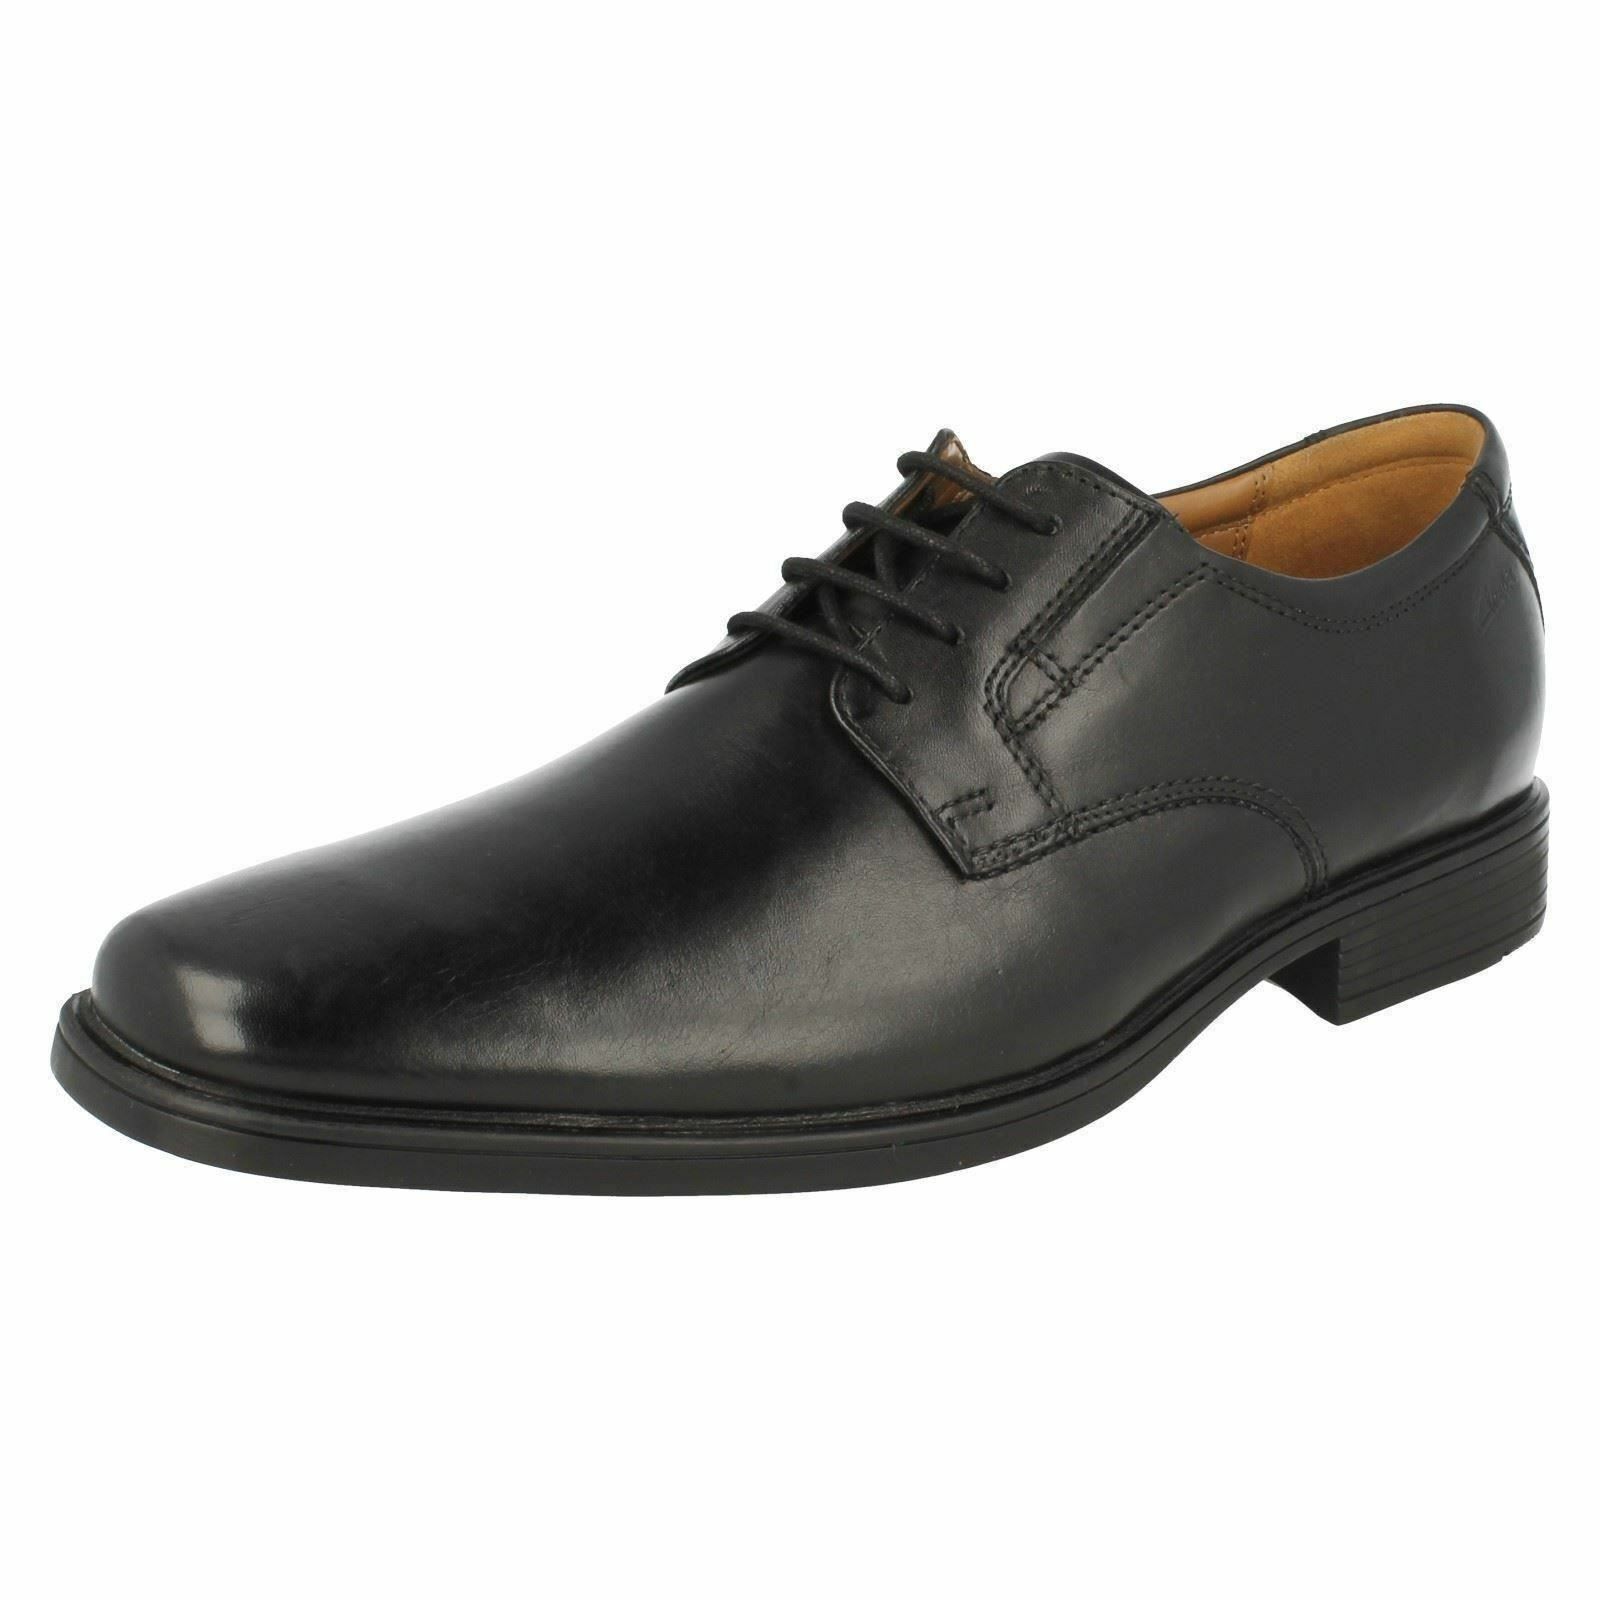 mens TILDEN PLAIN Black Leather lace up shoe By Clarks £49.99